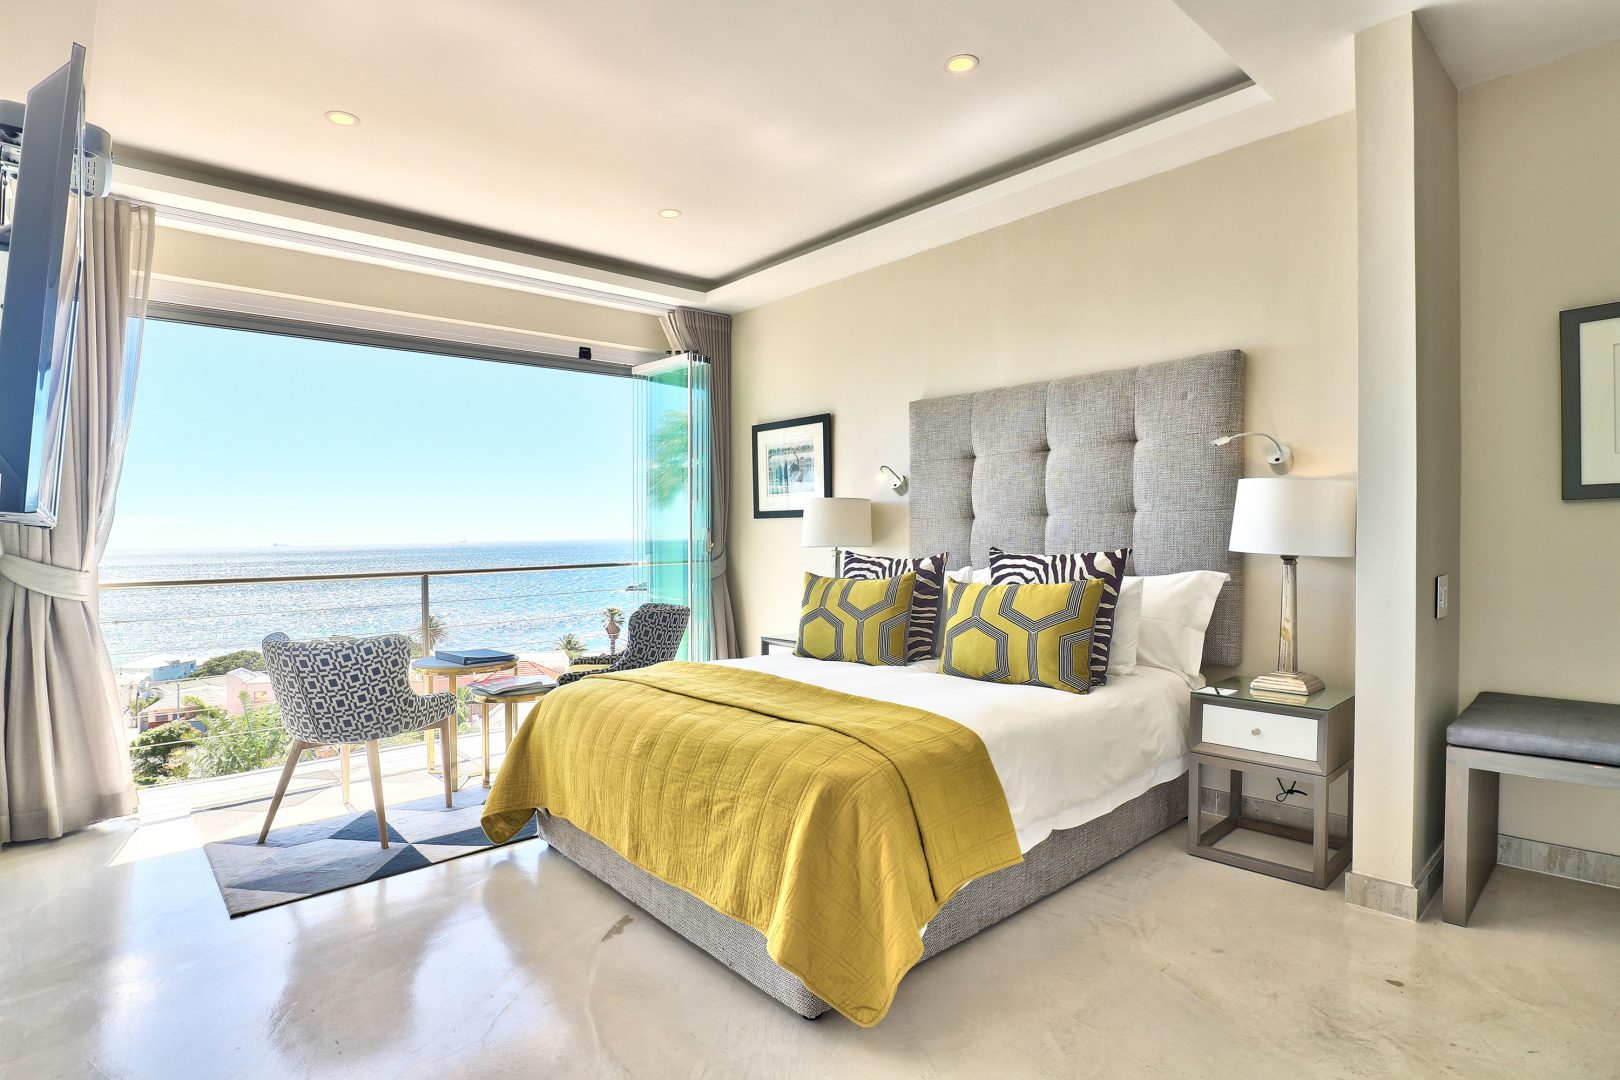 , Accommodation, Ocean View House, Ocean View House